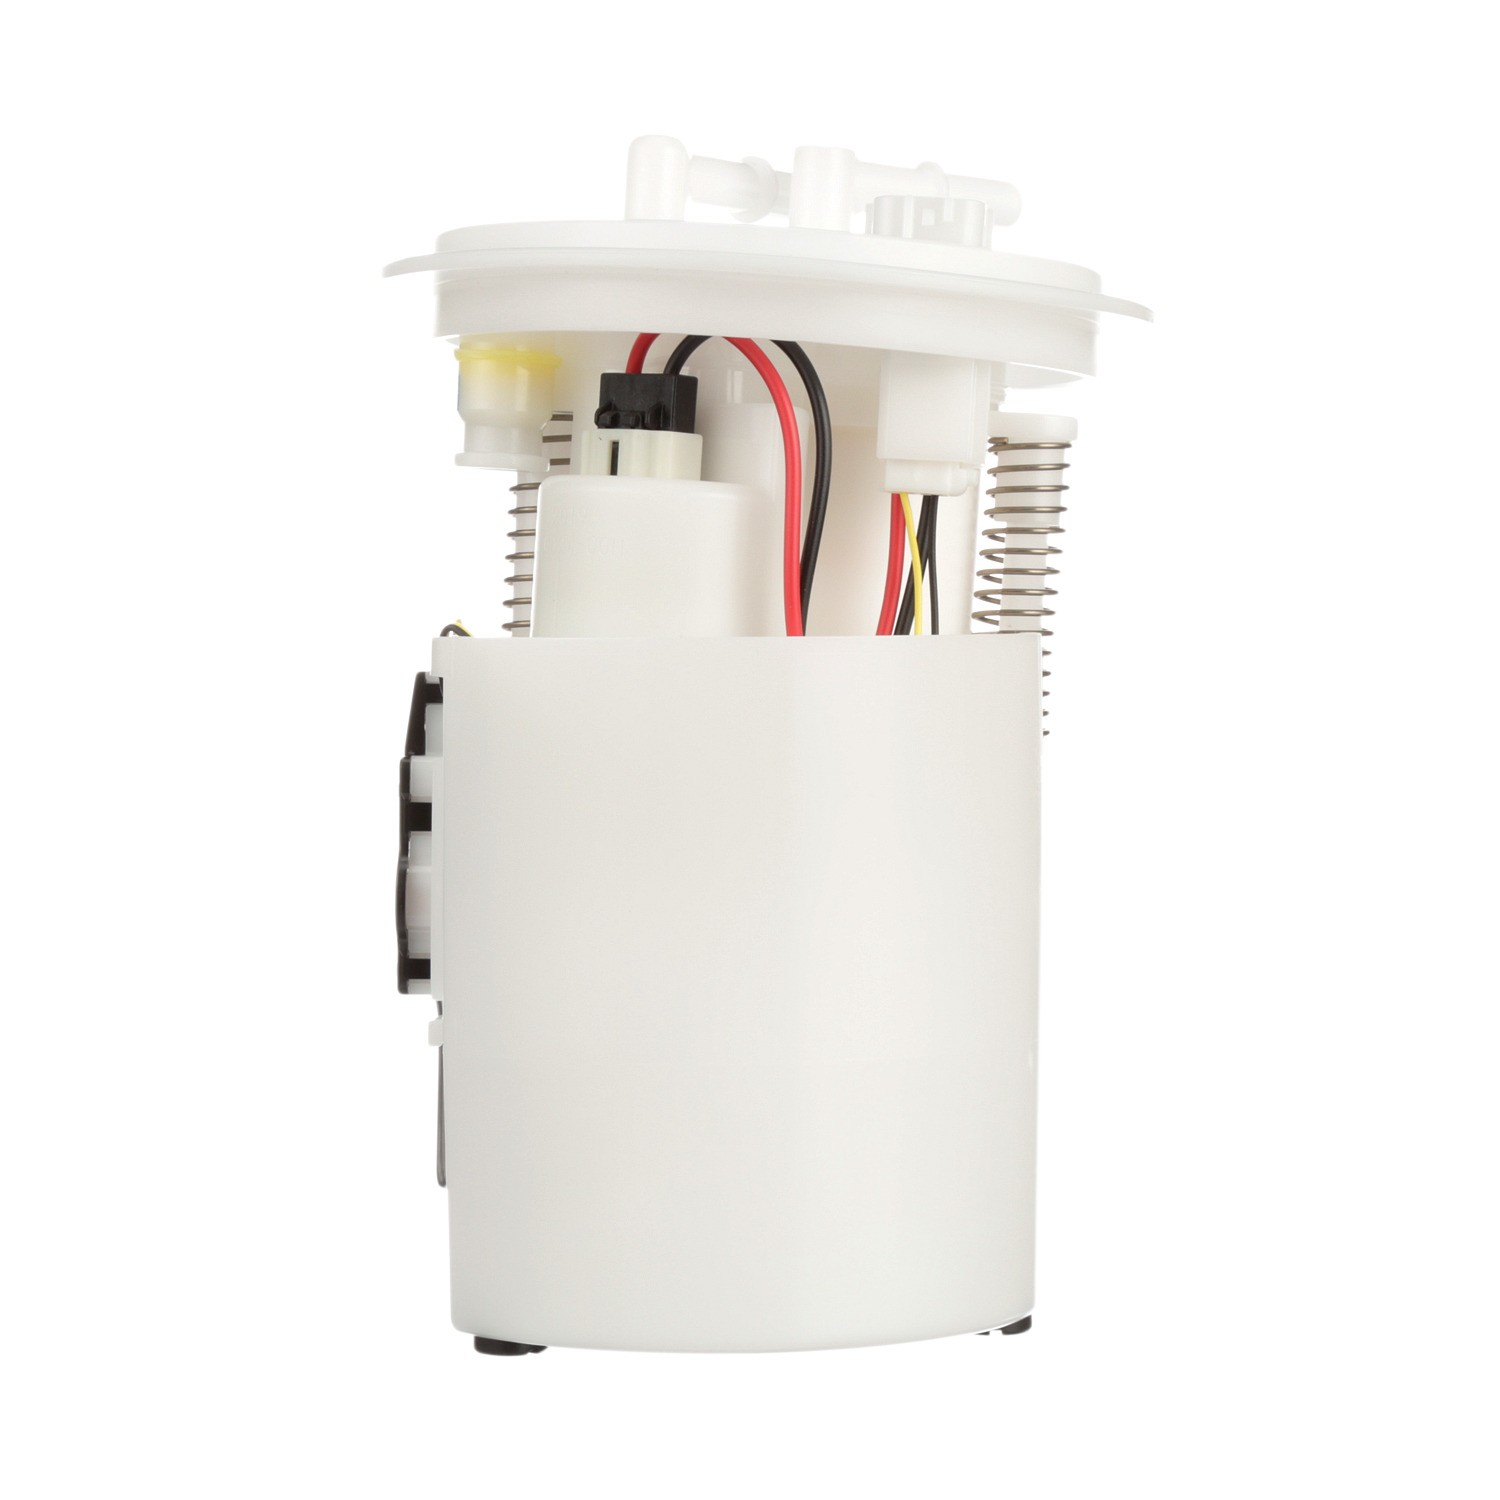 hight resolution of  2014 subaru outback fuel pump module assembly de fg1916